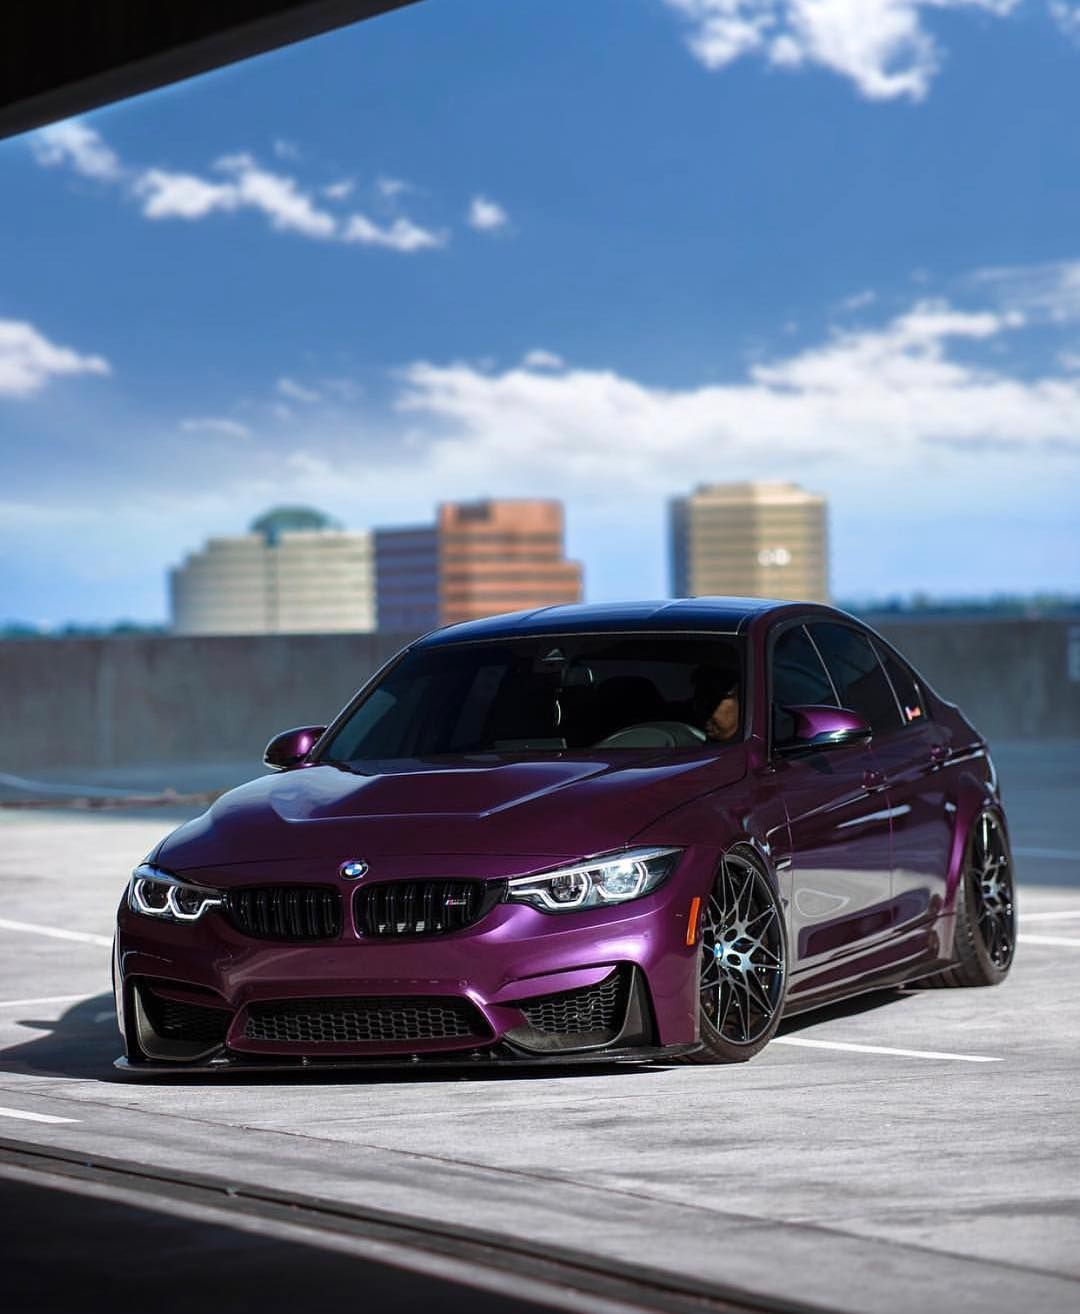 BMW F80 M3 In BMW Individual Purple Silk